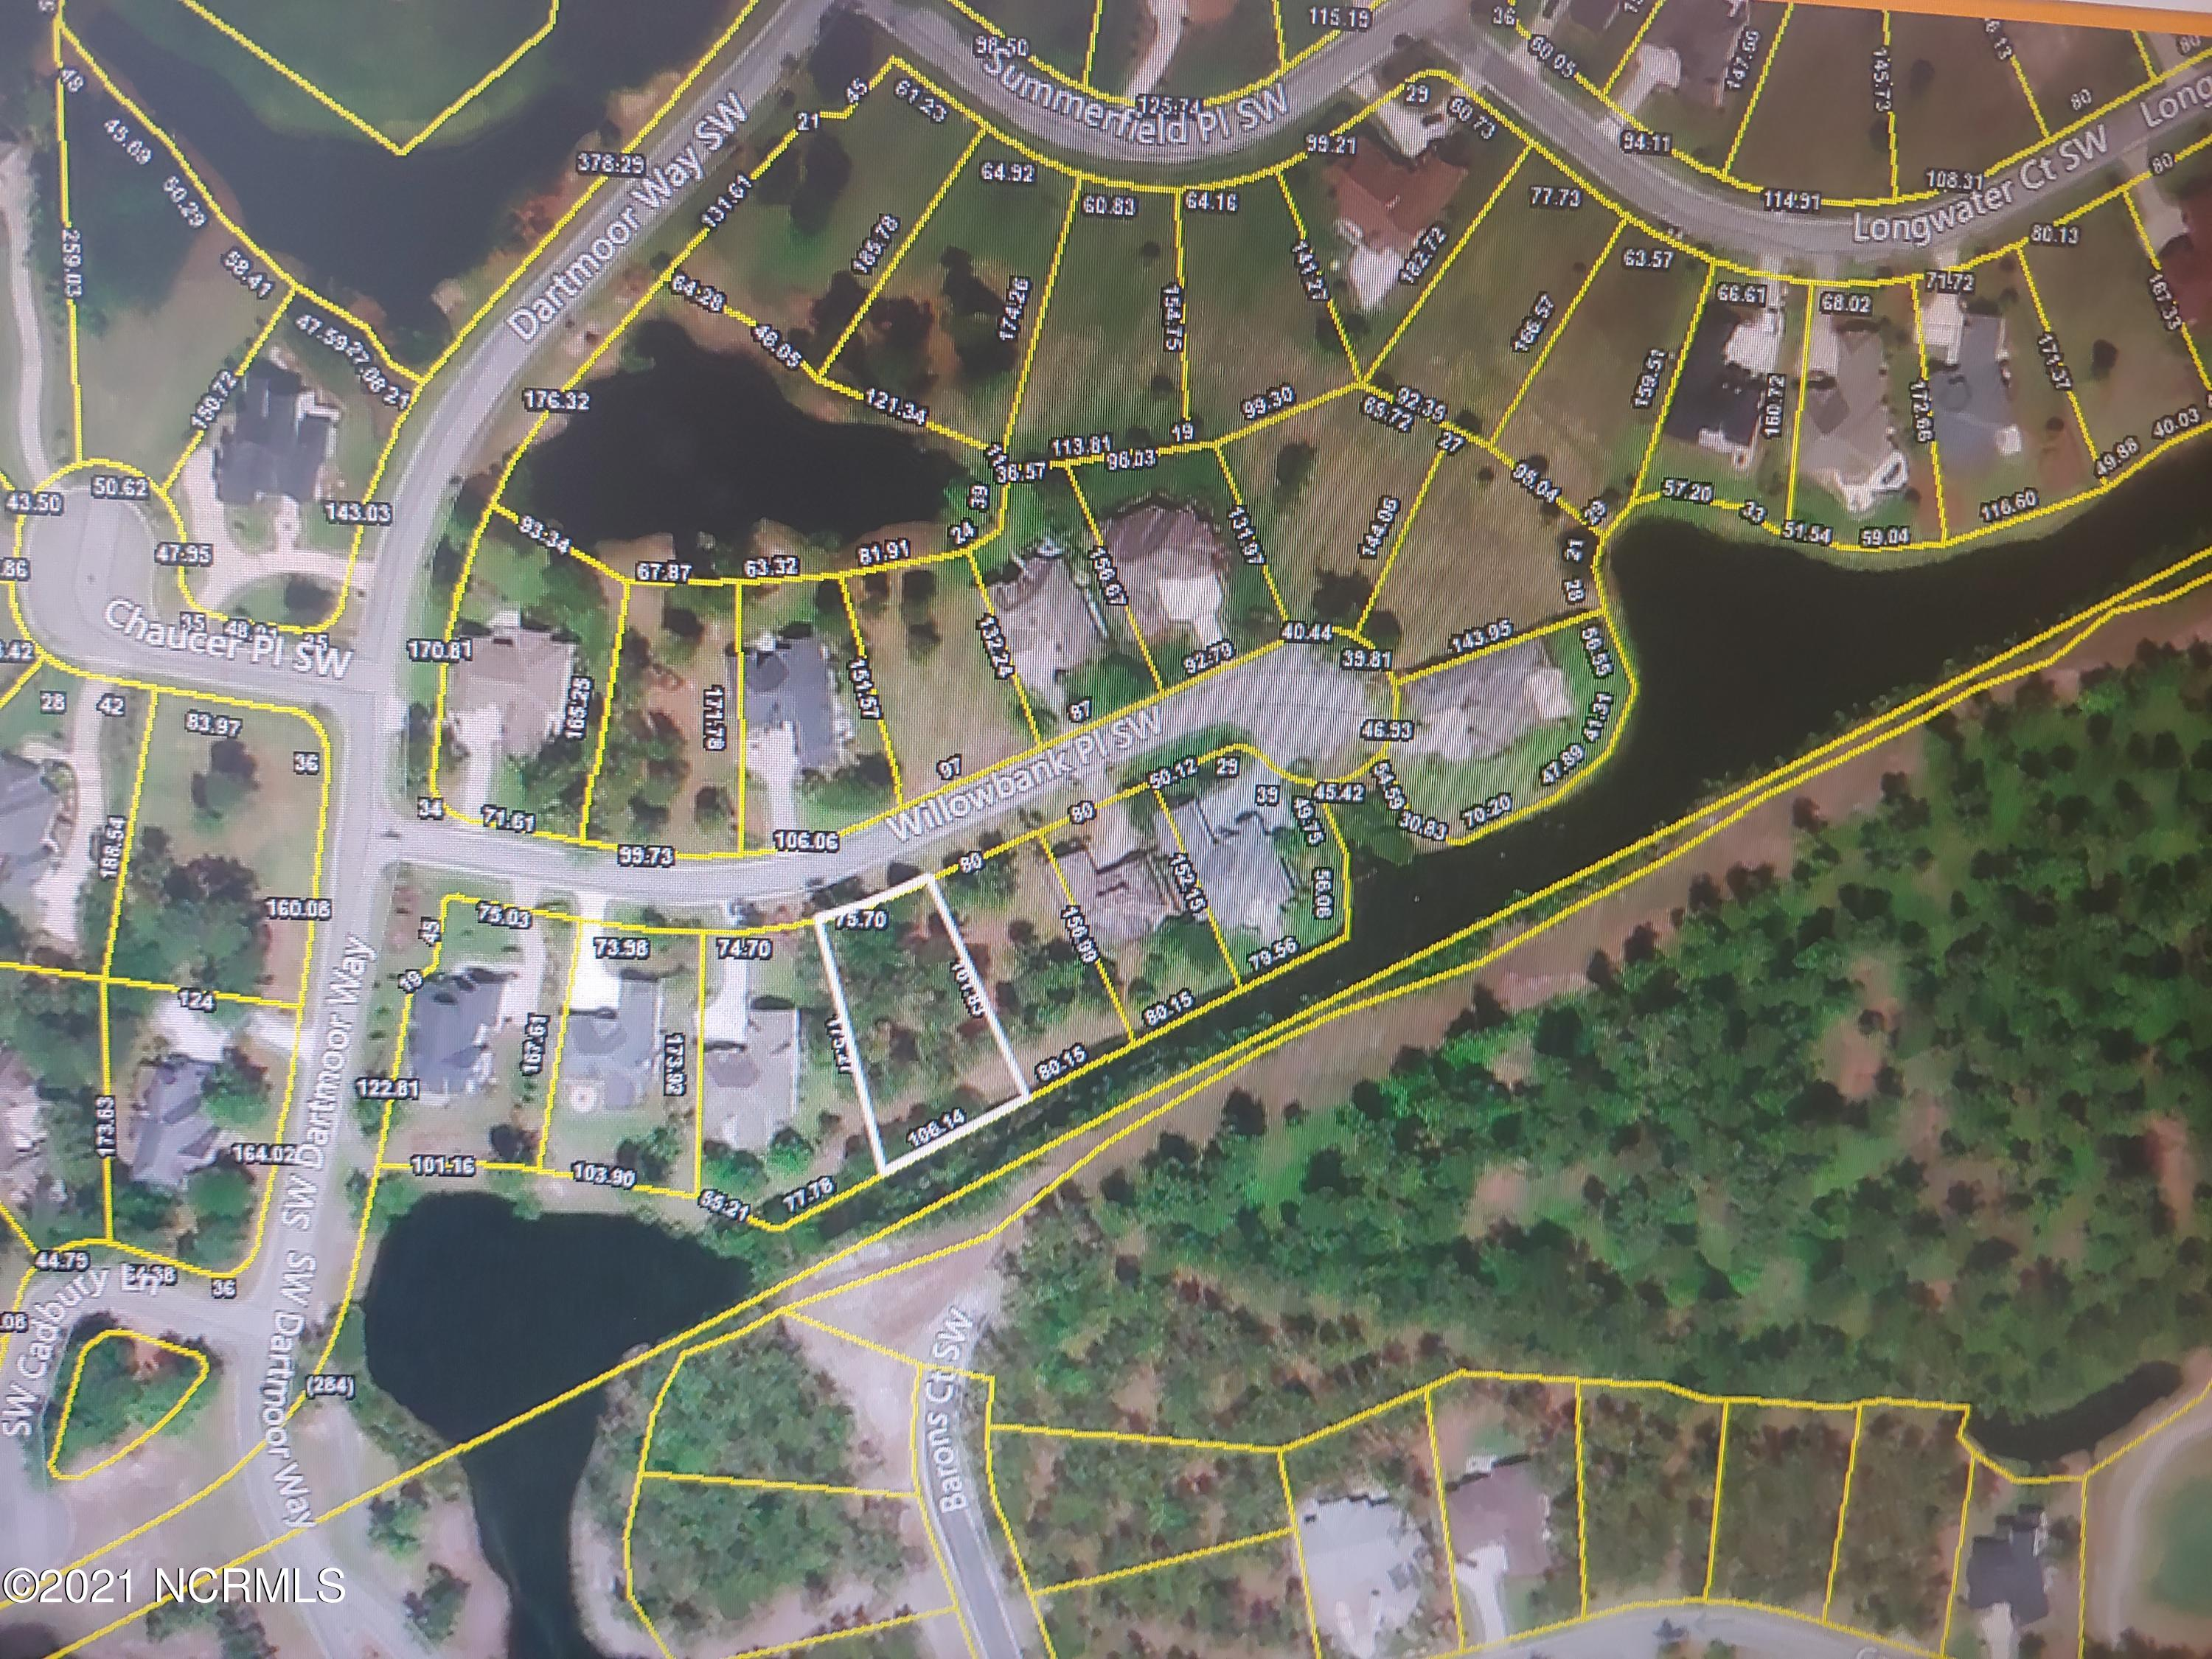 6591 Willowbank Place, Ocean Isle Beach, North Carolina 28469, ,Residential land,For sale,Willowbank,100277524